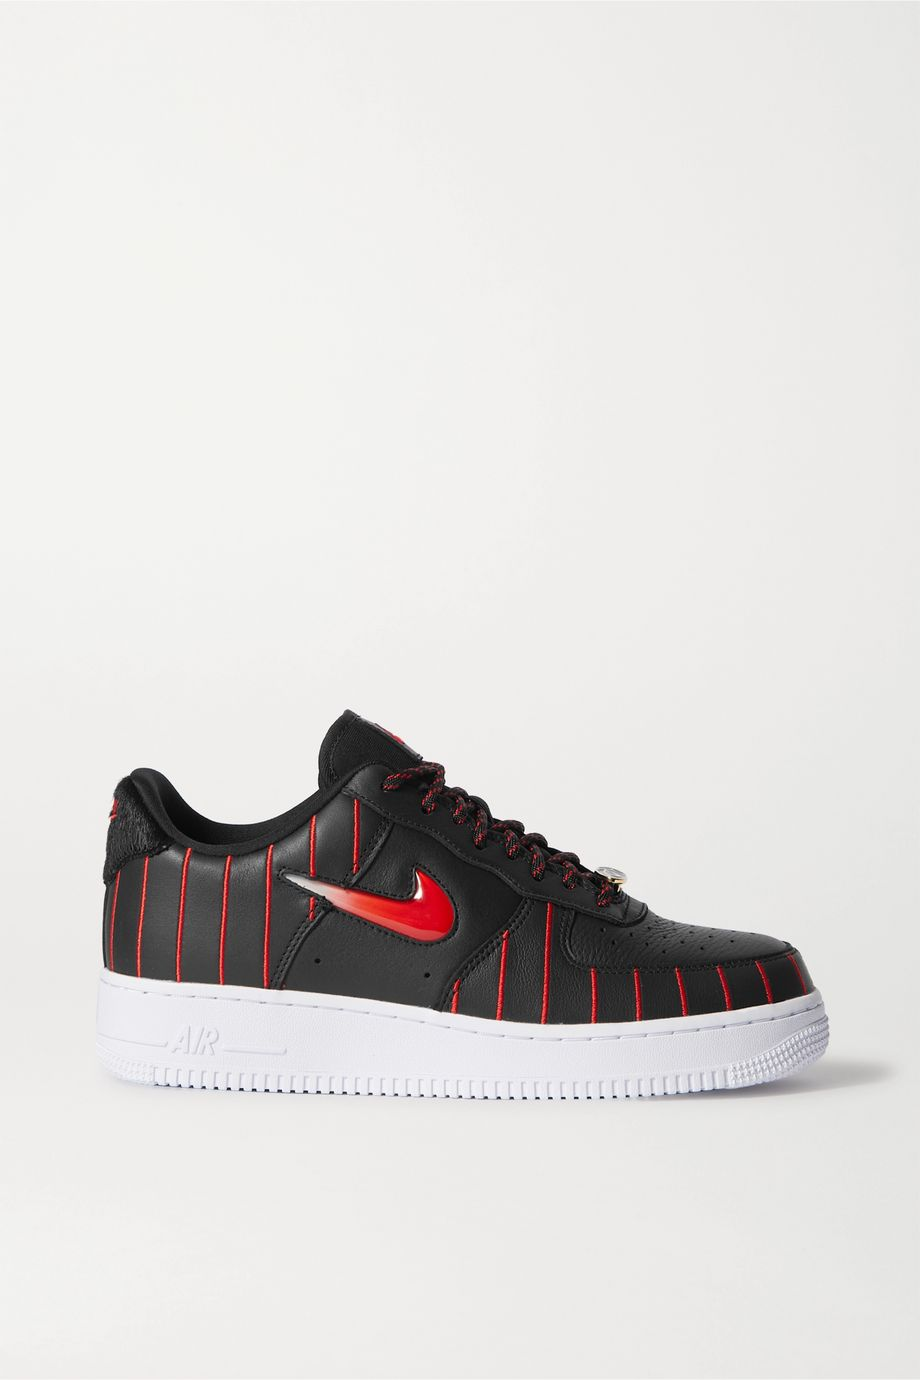 Nike Air Force 1 Jewel QS pinstriped leather sneakers